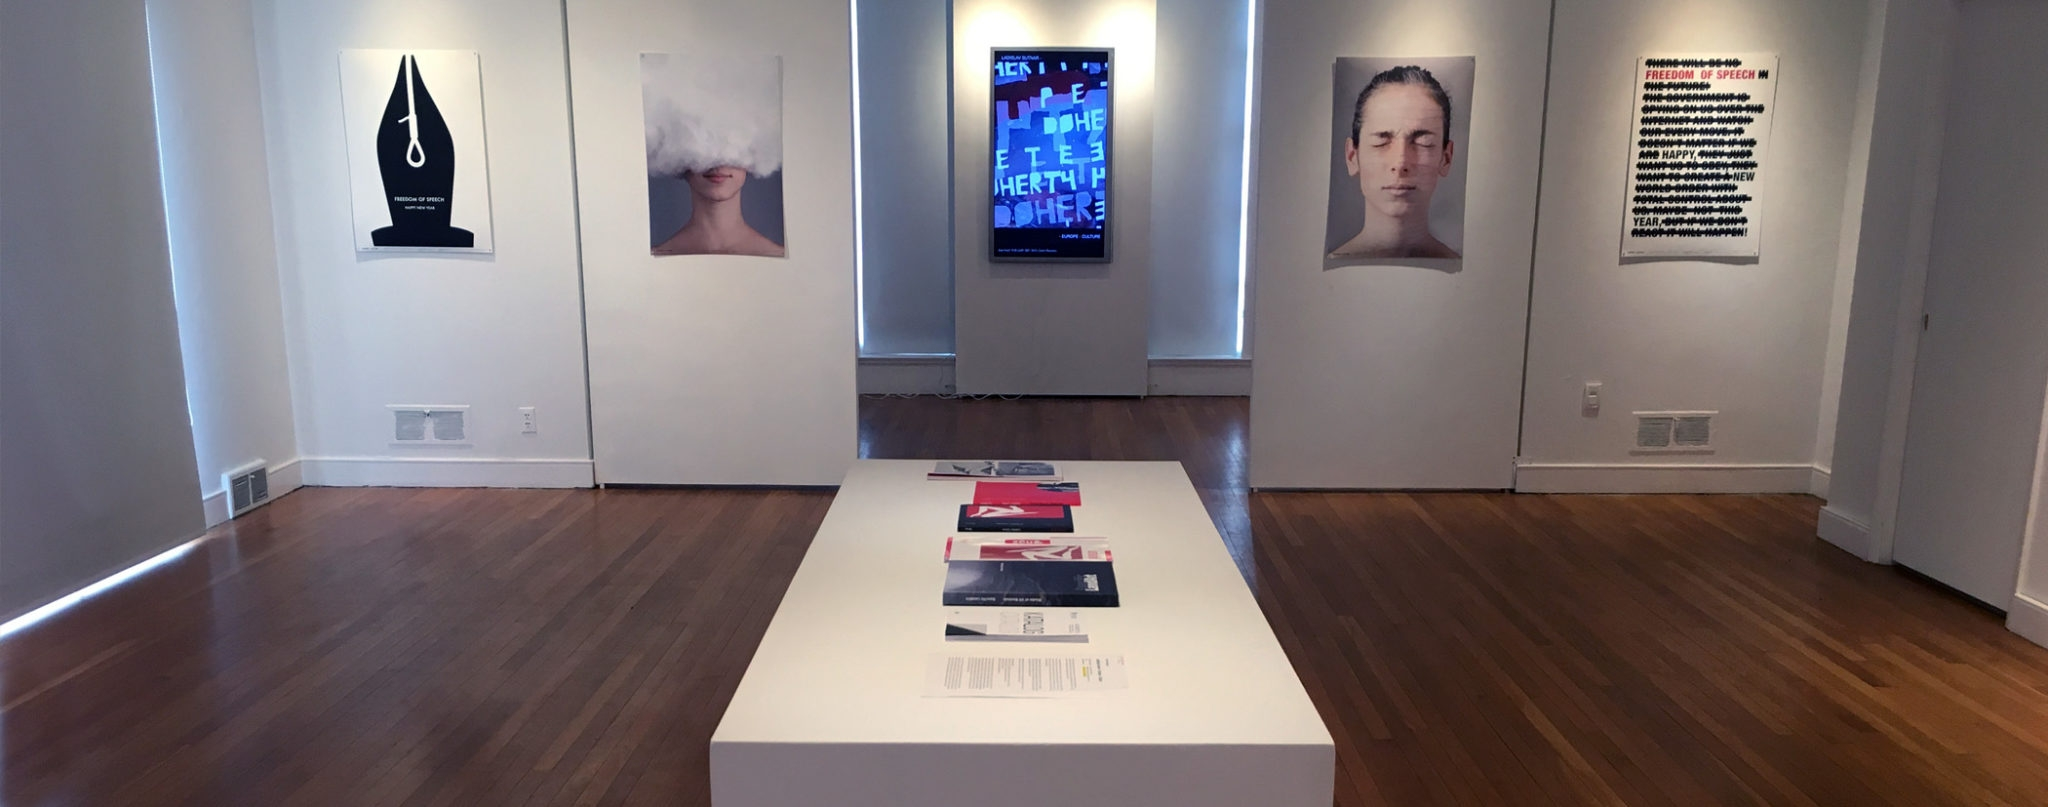 Past Exhibition at the MIX Gallery